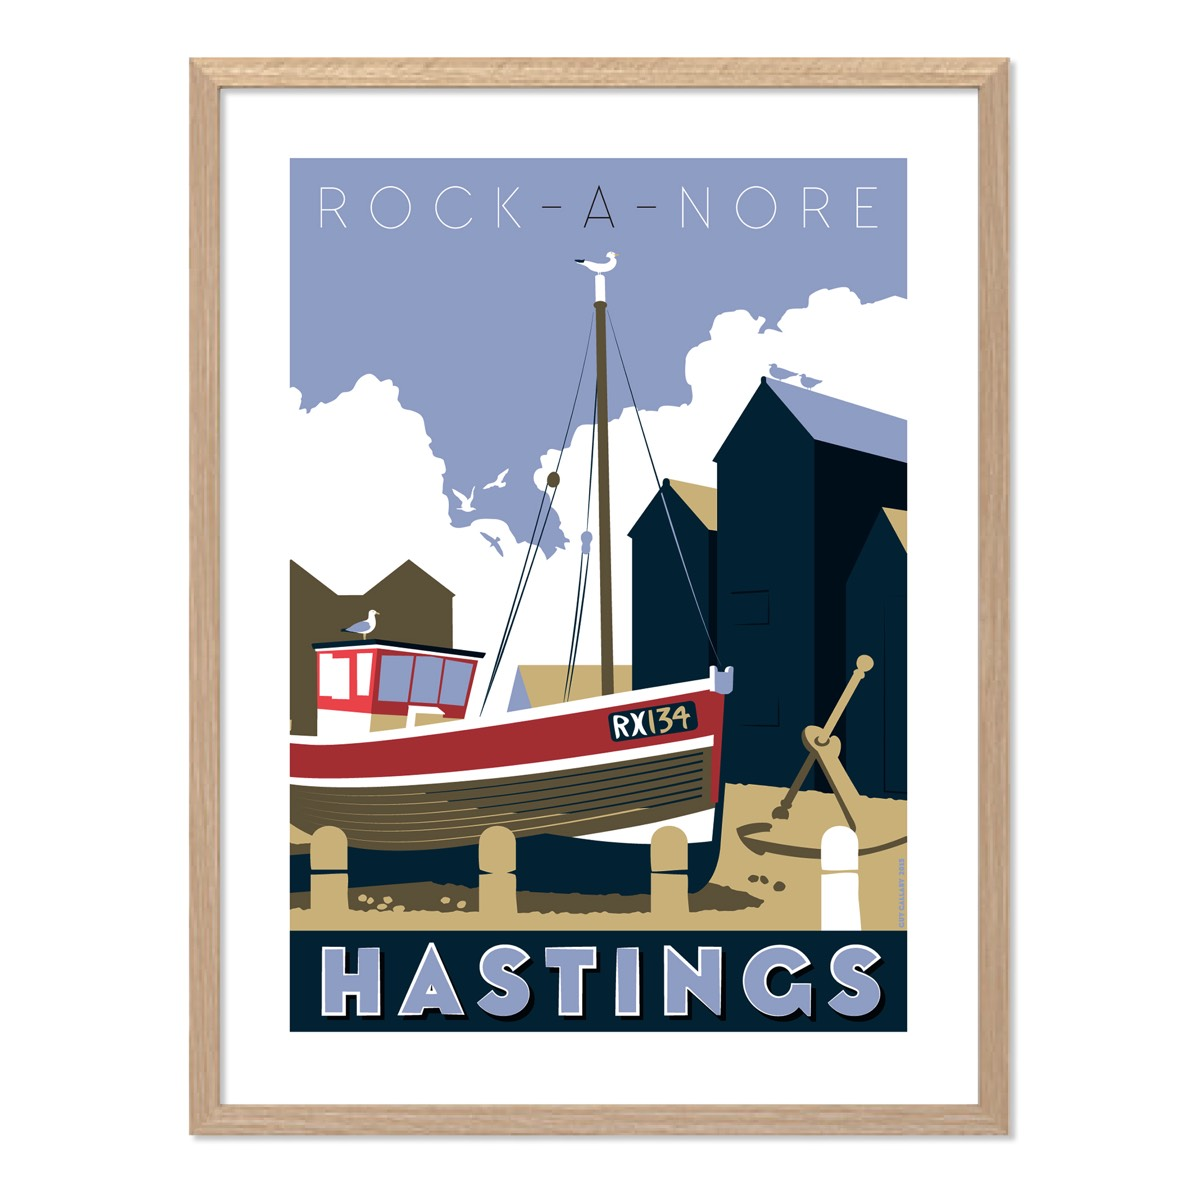 Print of Rock-a-Nore boat RX134, Hastings